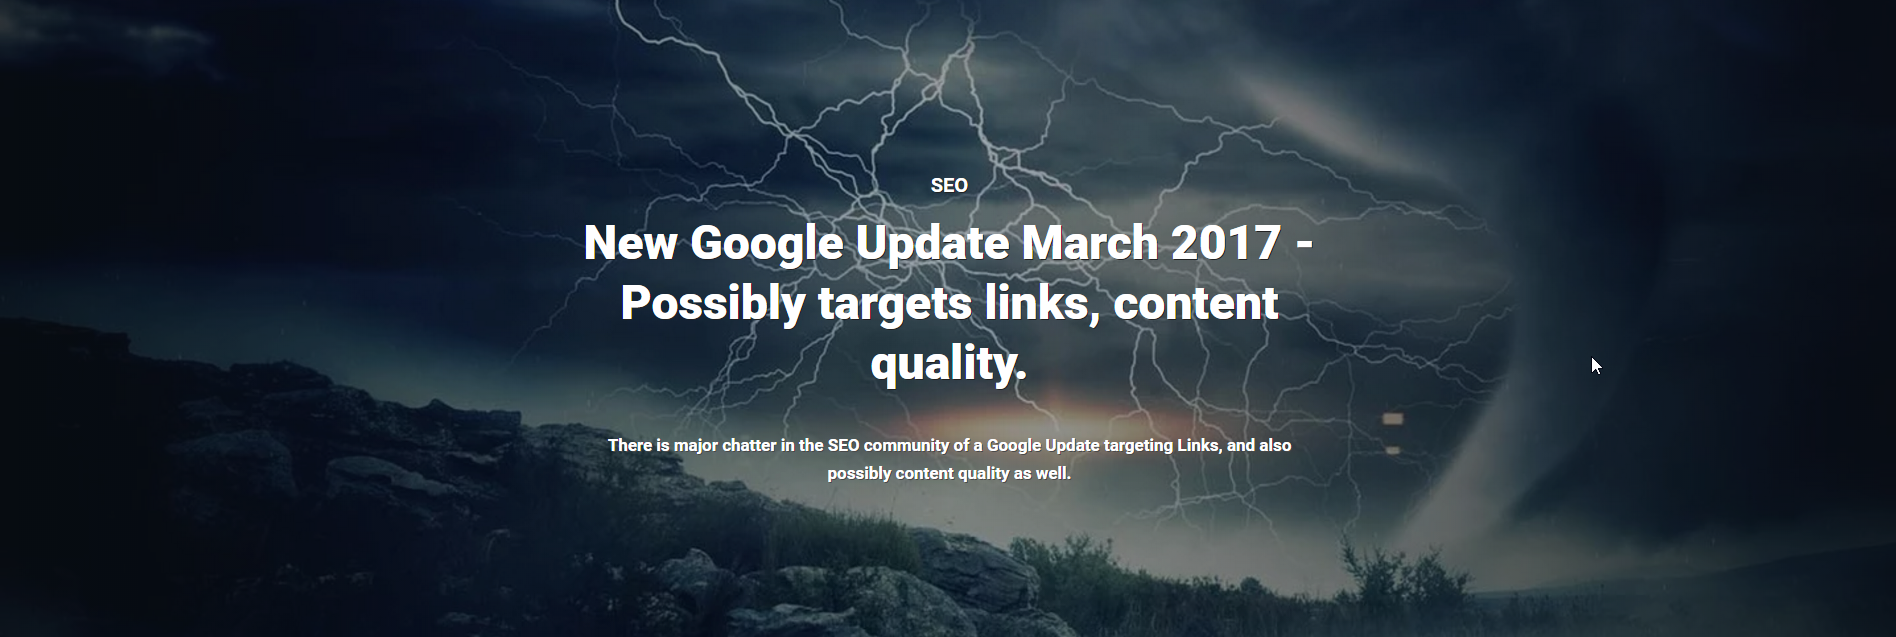 New Google Update March 2017